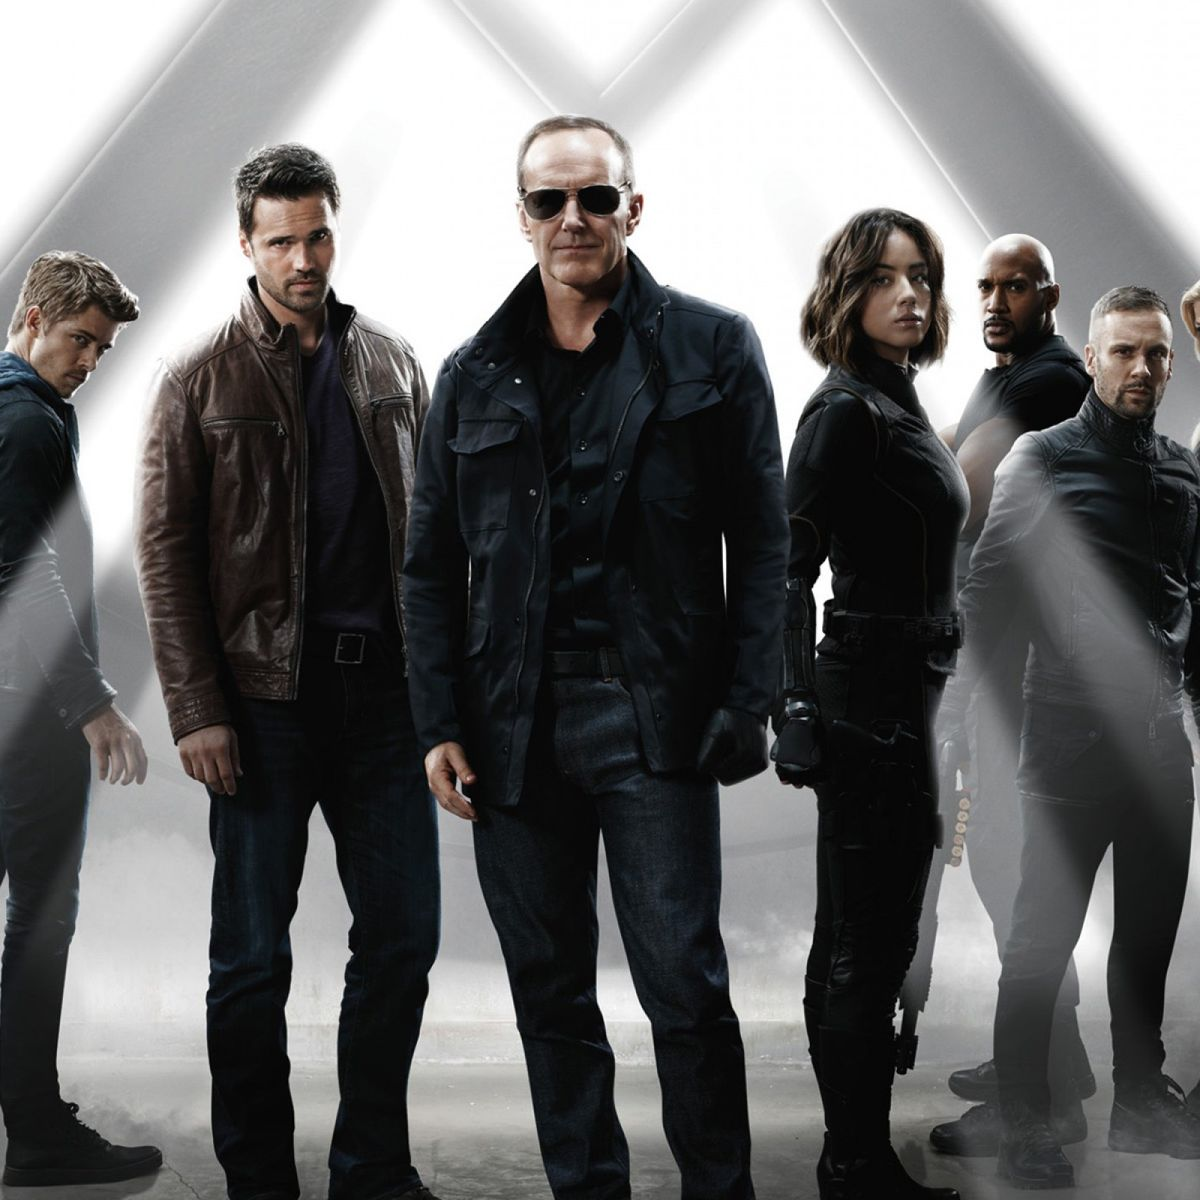 agents-of-shield-season-3.jpg